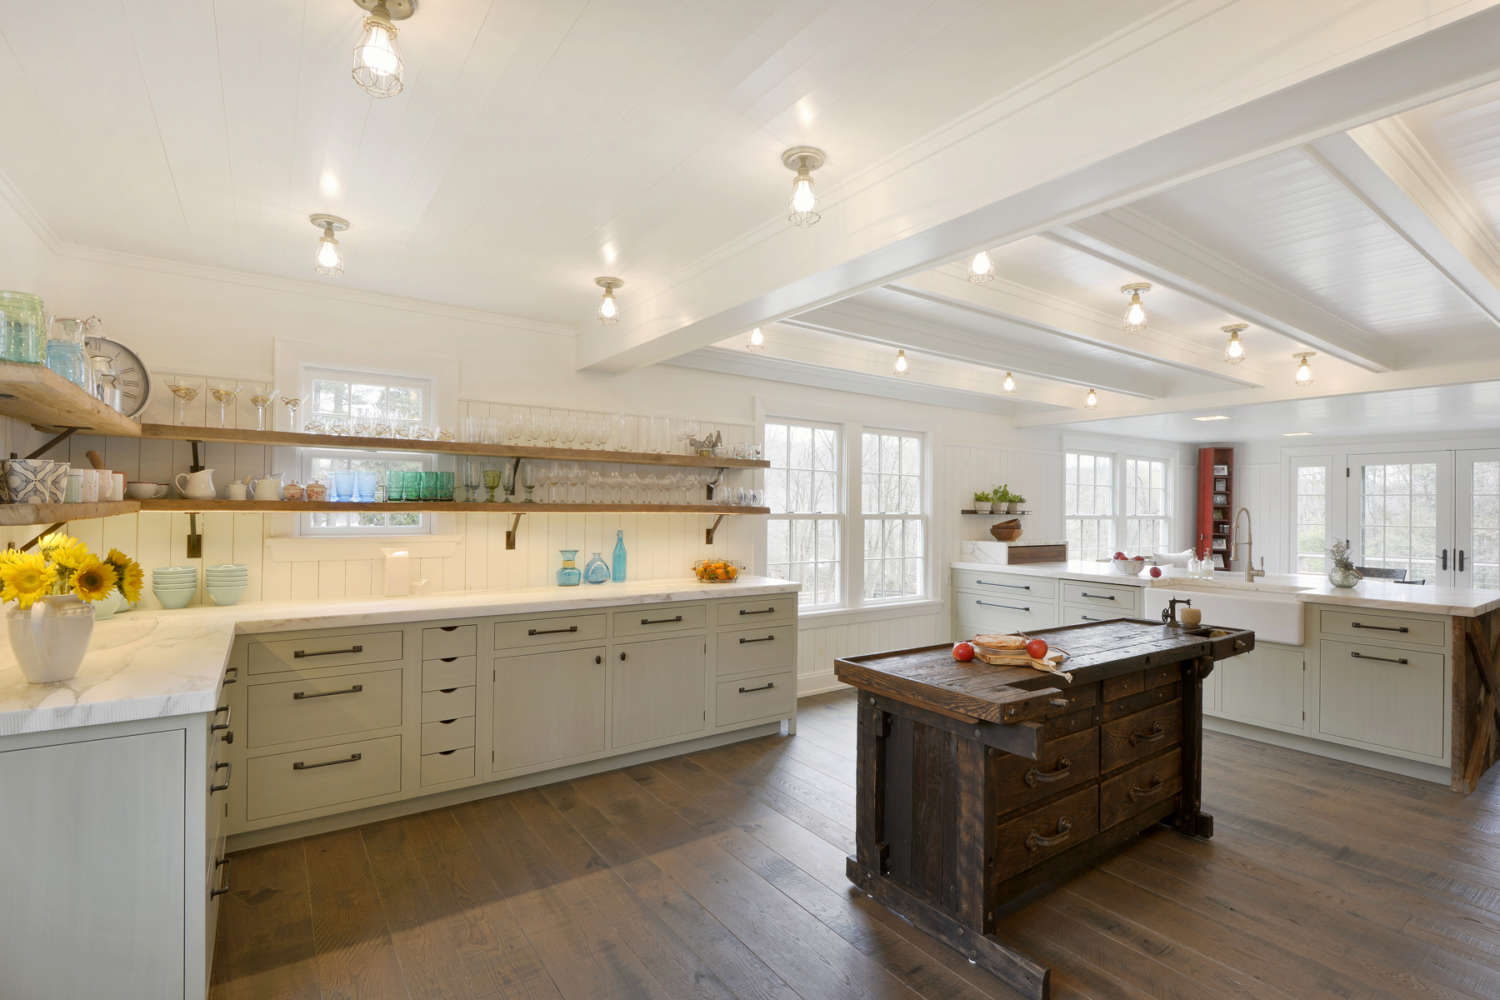 Expansive country kitchen features wood plank flooring, white beadboard ceiling and walls, exposed lighting, oversized windows, a custom wood island, fully custom flat panel inset pale green painted cabinets by Bilotta and white marble countertops. The kitchen design by Paulette Gambacorta of Bilotta Kitchens includes accents of oil rubbed bronze in the cabinet hardware and the supports for the open shelving.